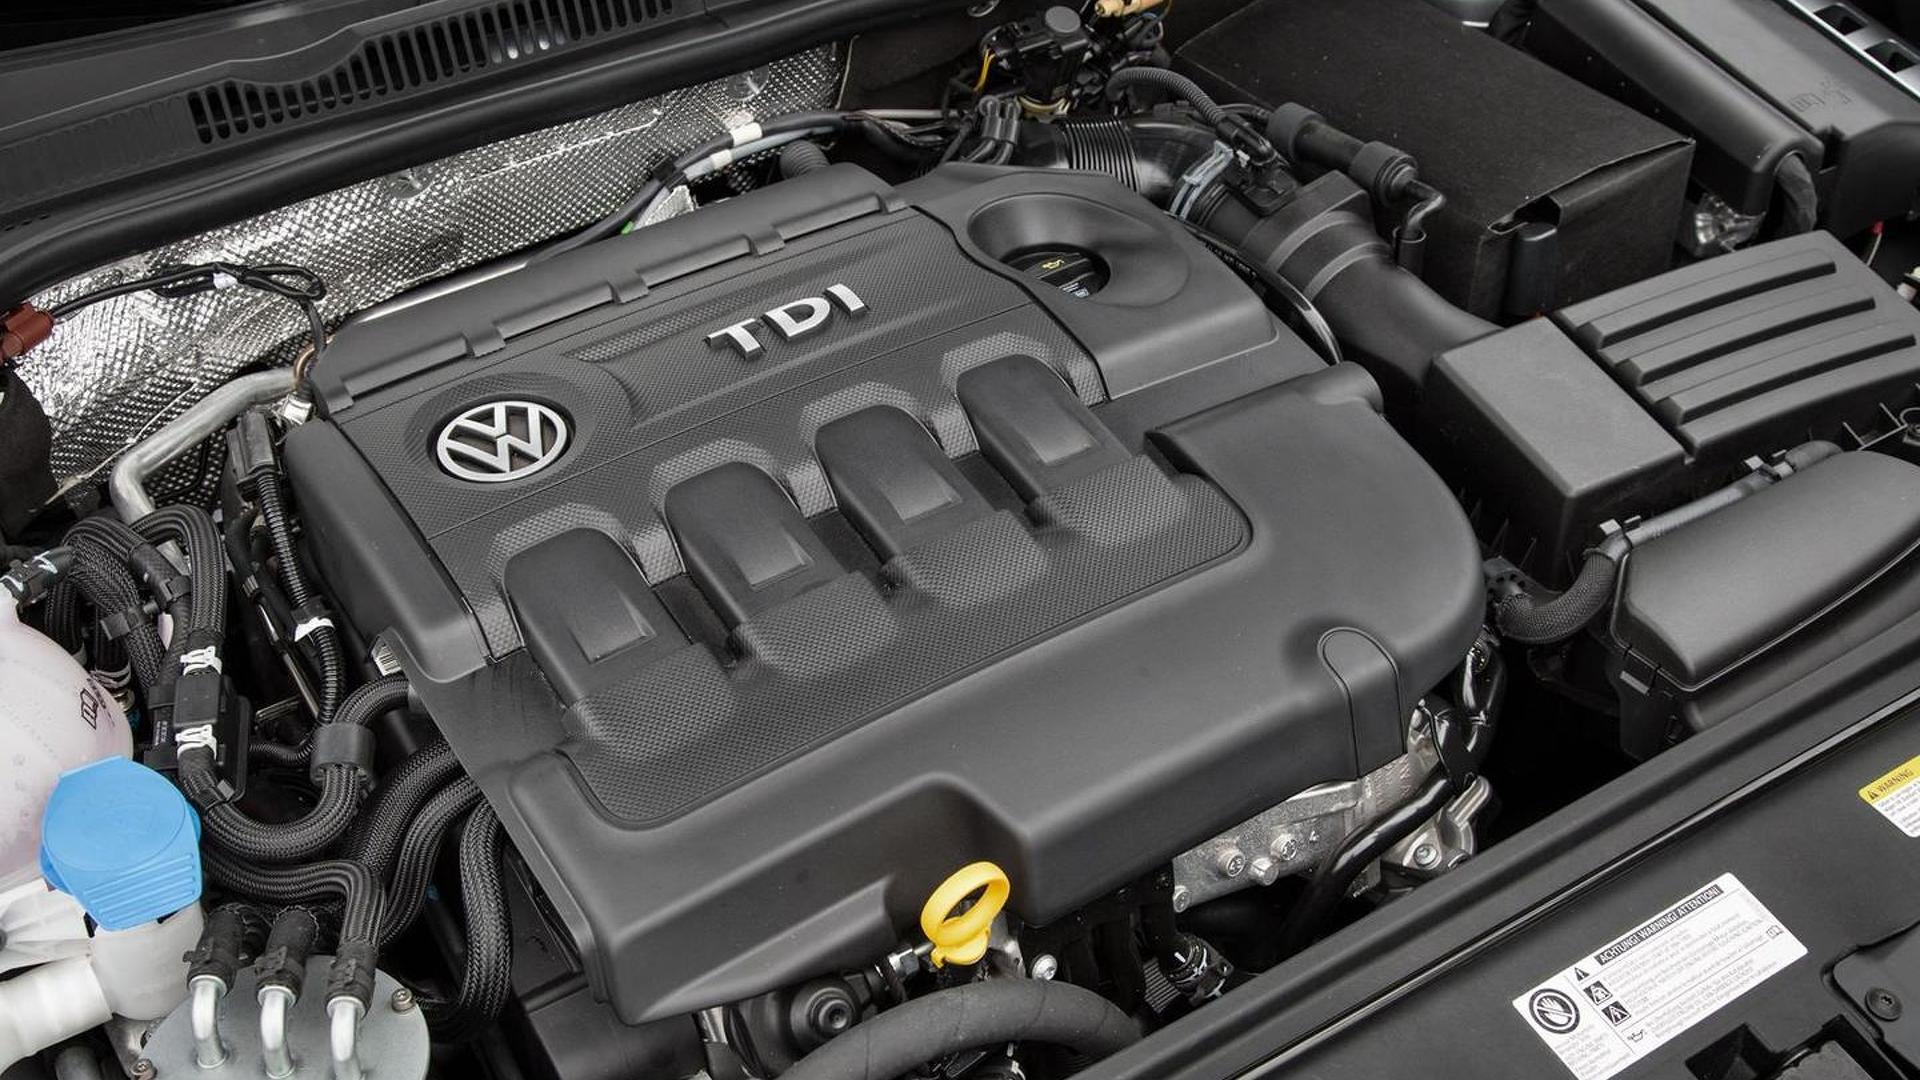 CARB starts testing new VW emissions fix